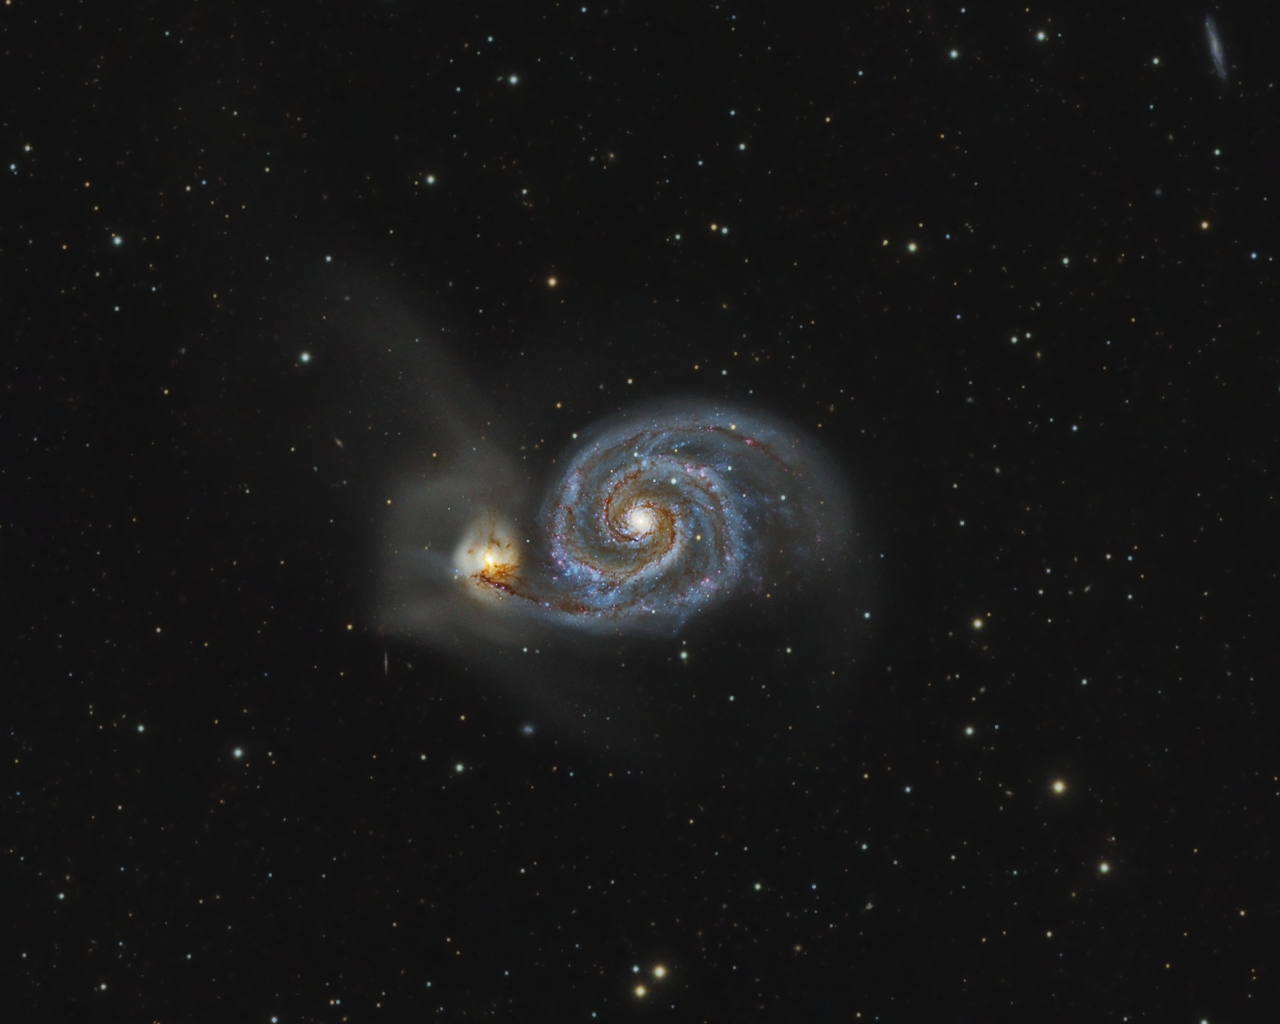 M51.jpg -          texto_bright    Object:M51 Whirlpool Galaxy   Date:21-03, 02-05, 15-05-2009   Observingsite: FNO (Fosca Nit Observatory, Àger)   Telescope: TakahashiTOA-150  @ f/7.3 on EM-400 mount   Camera:SBIG STL-11000M  @ -20C   Filters: Baader RGB   Exposure:5 x 30 min R; 5 x 30 min G; 5 x 30 min B (all unbinned).  Totalexposure: 7,5 h     Guiding: Camera guide chip     Software:Guide & camera control: CCDSoft. Processing: PixInsight 1.5 Comment: Pure RGB image.